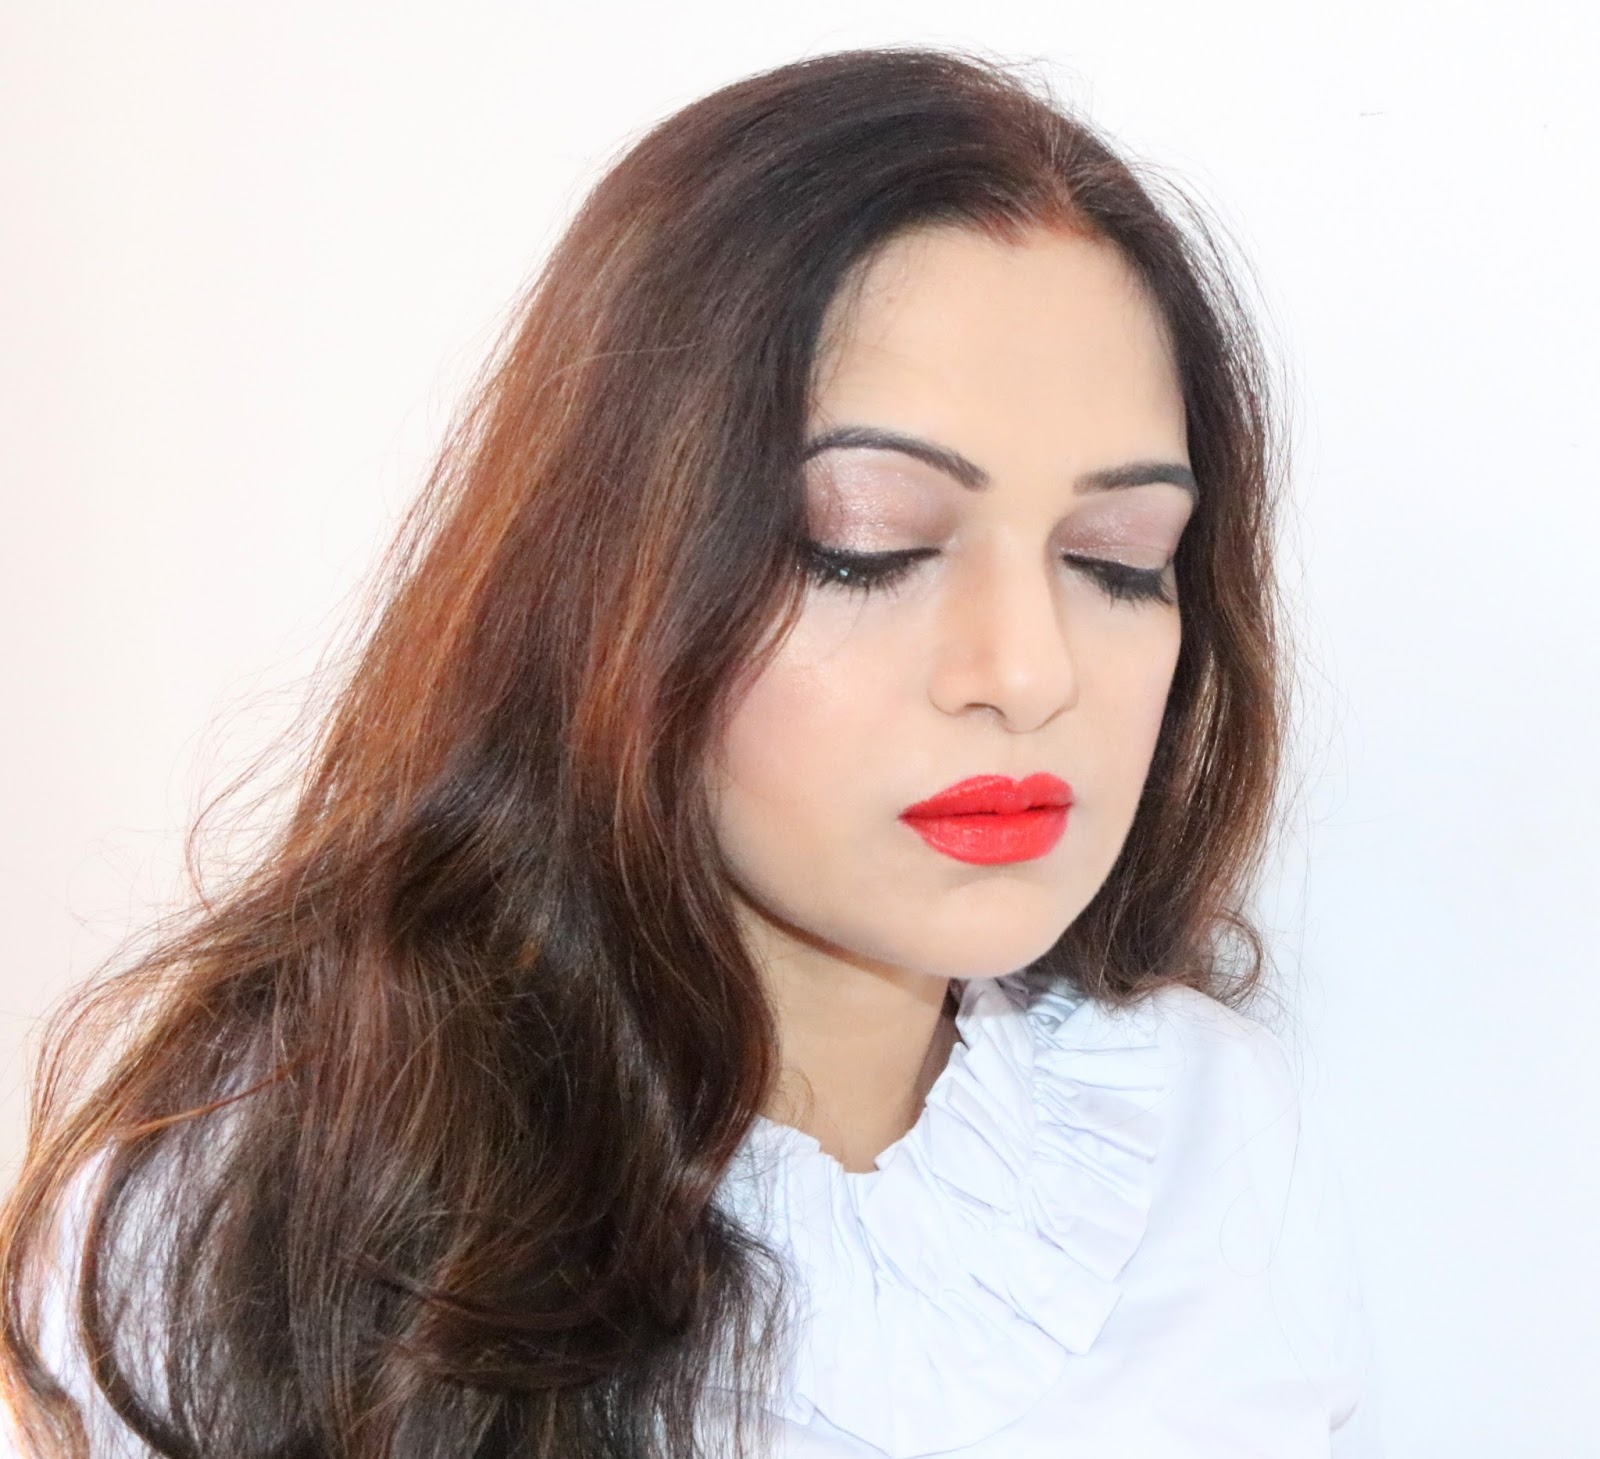 BEAUTY, BEAUTY BLOGGER, RED LIPS, DO A FALL MAKEUP, EYE MAKEUP, FALL, FALL MAKEUP, FALL MAKEUP LOOK,